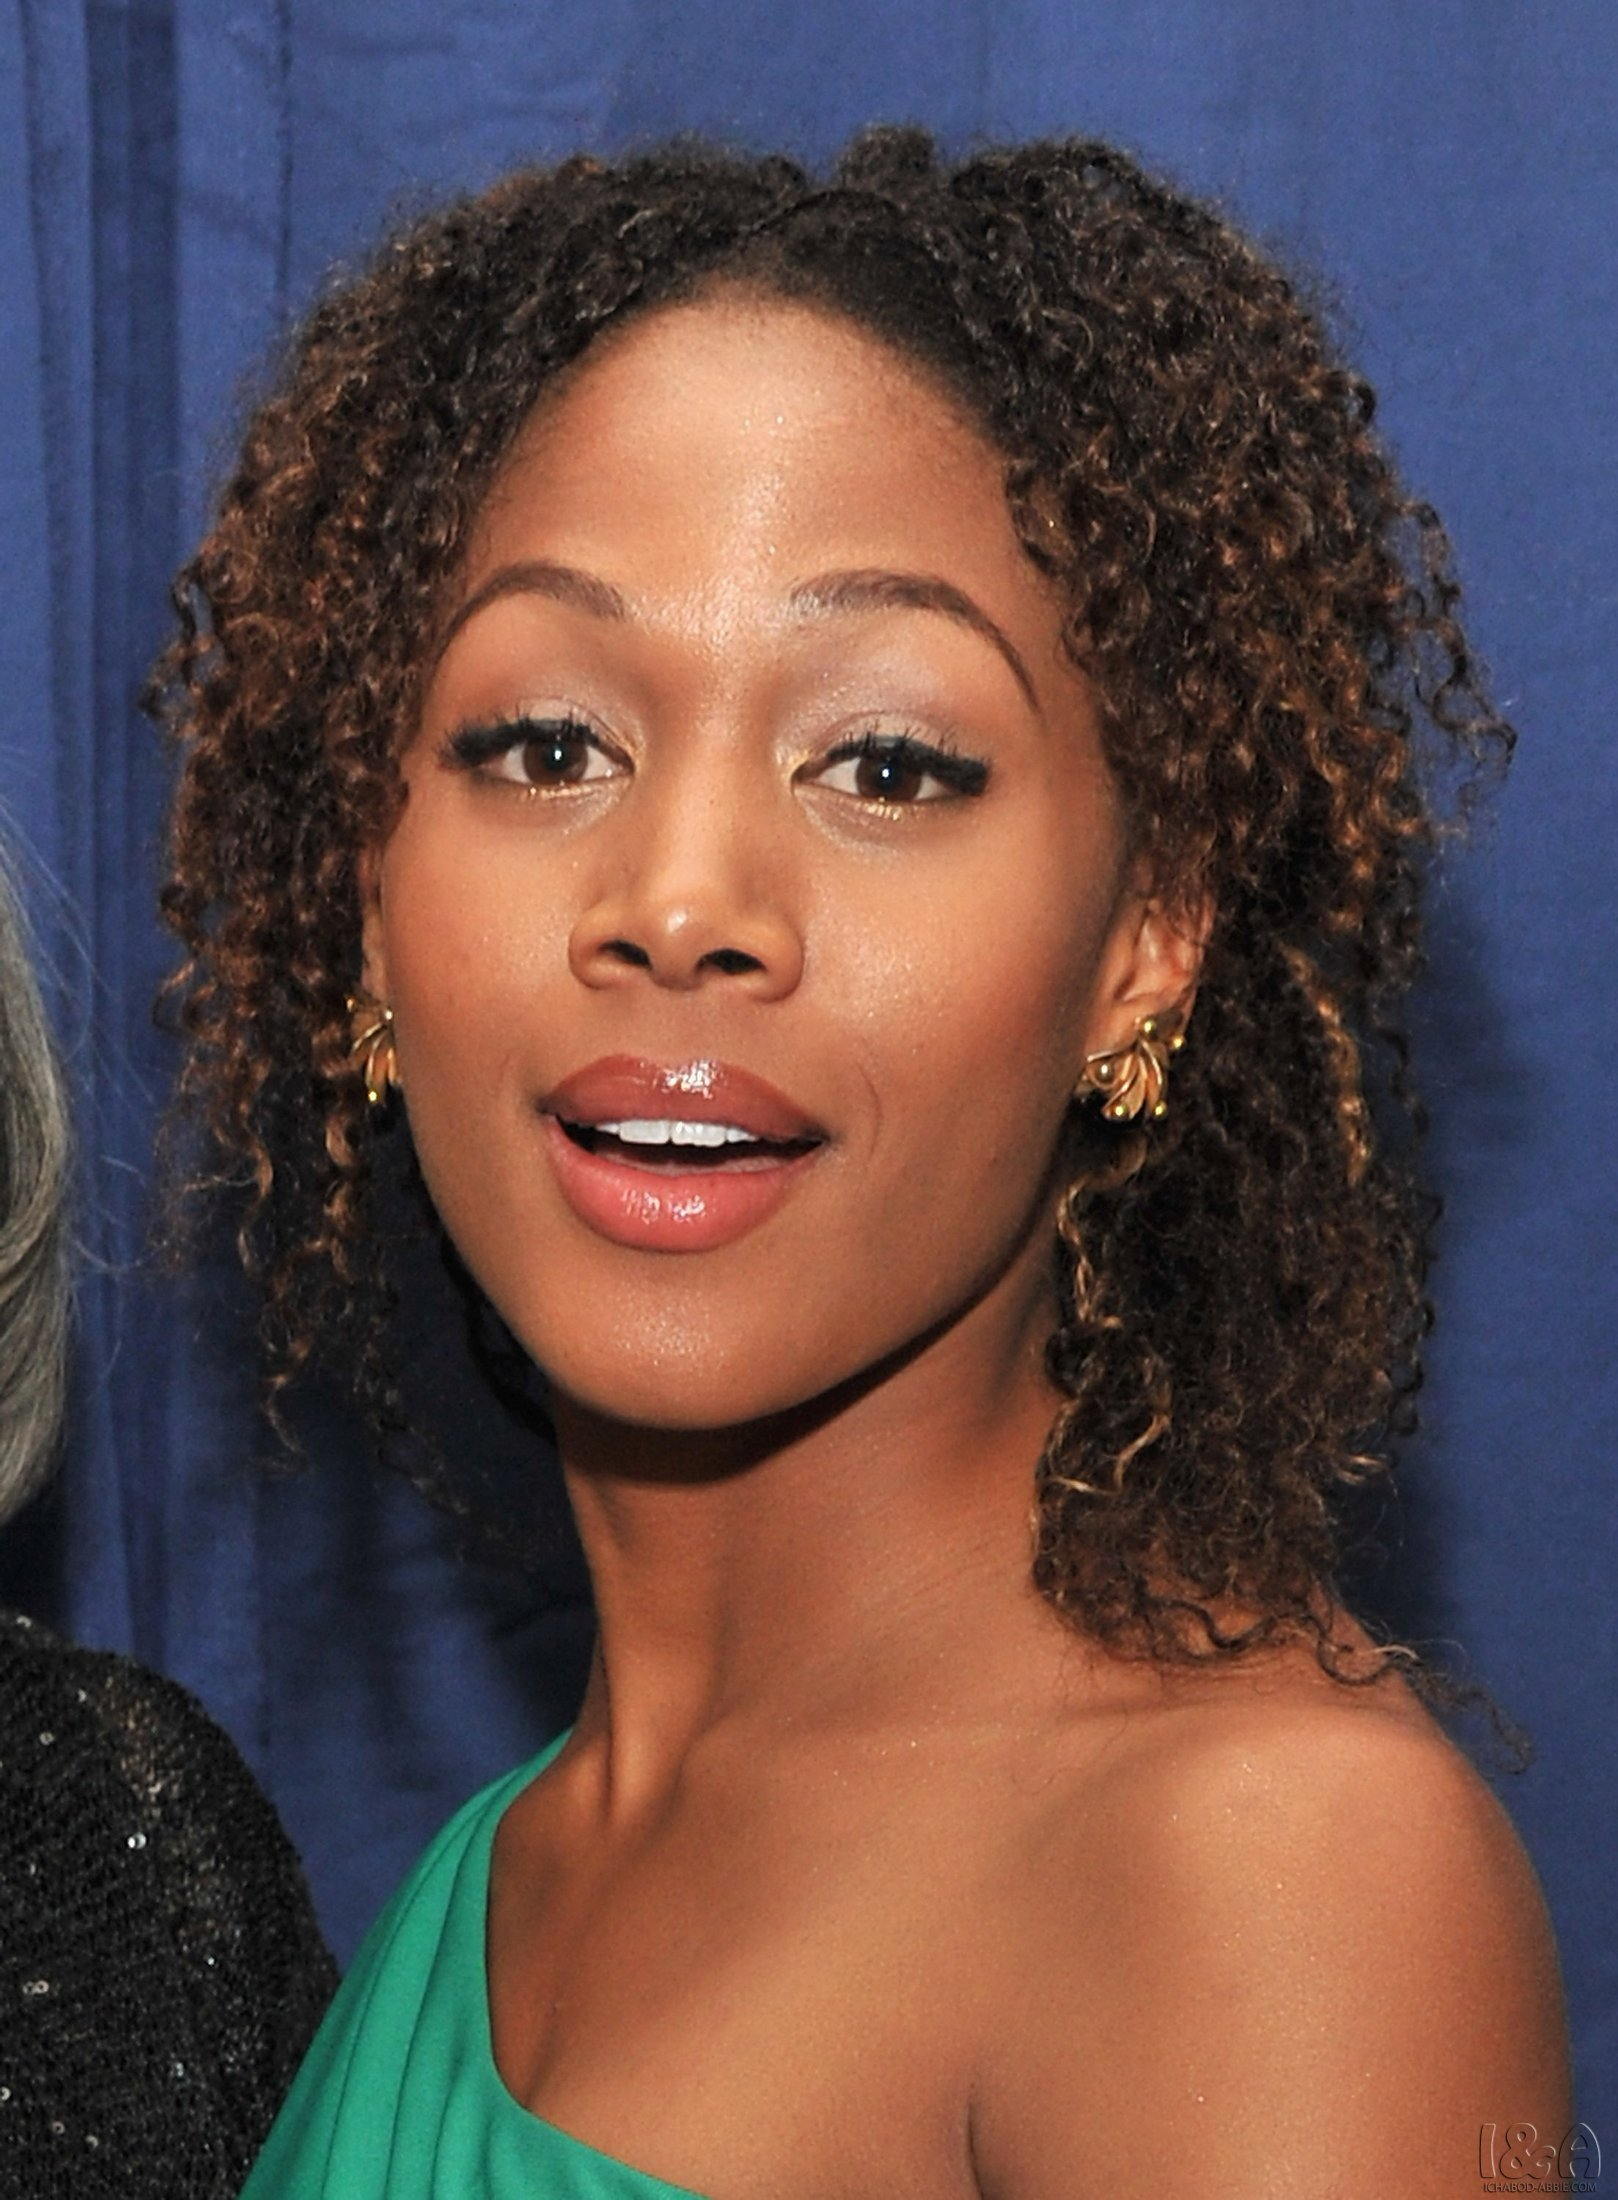 nicole beharie left